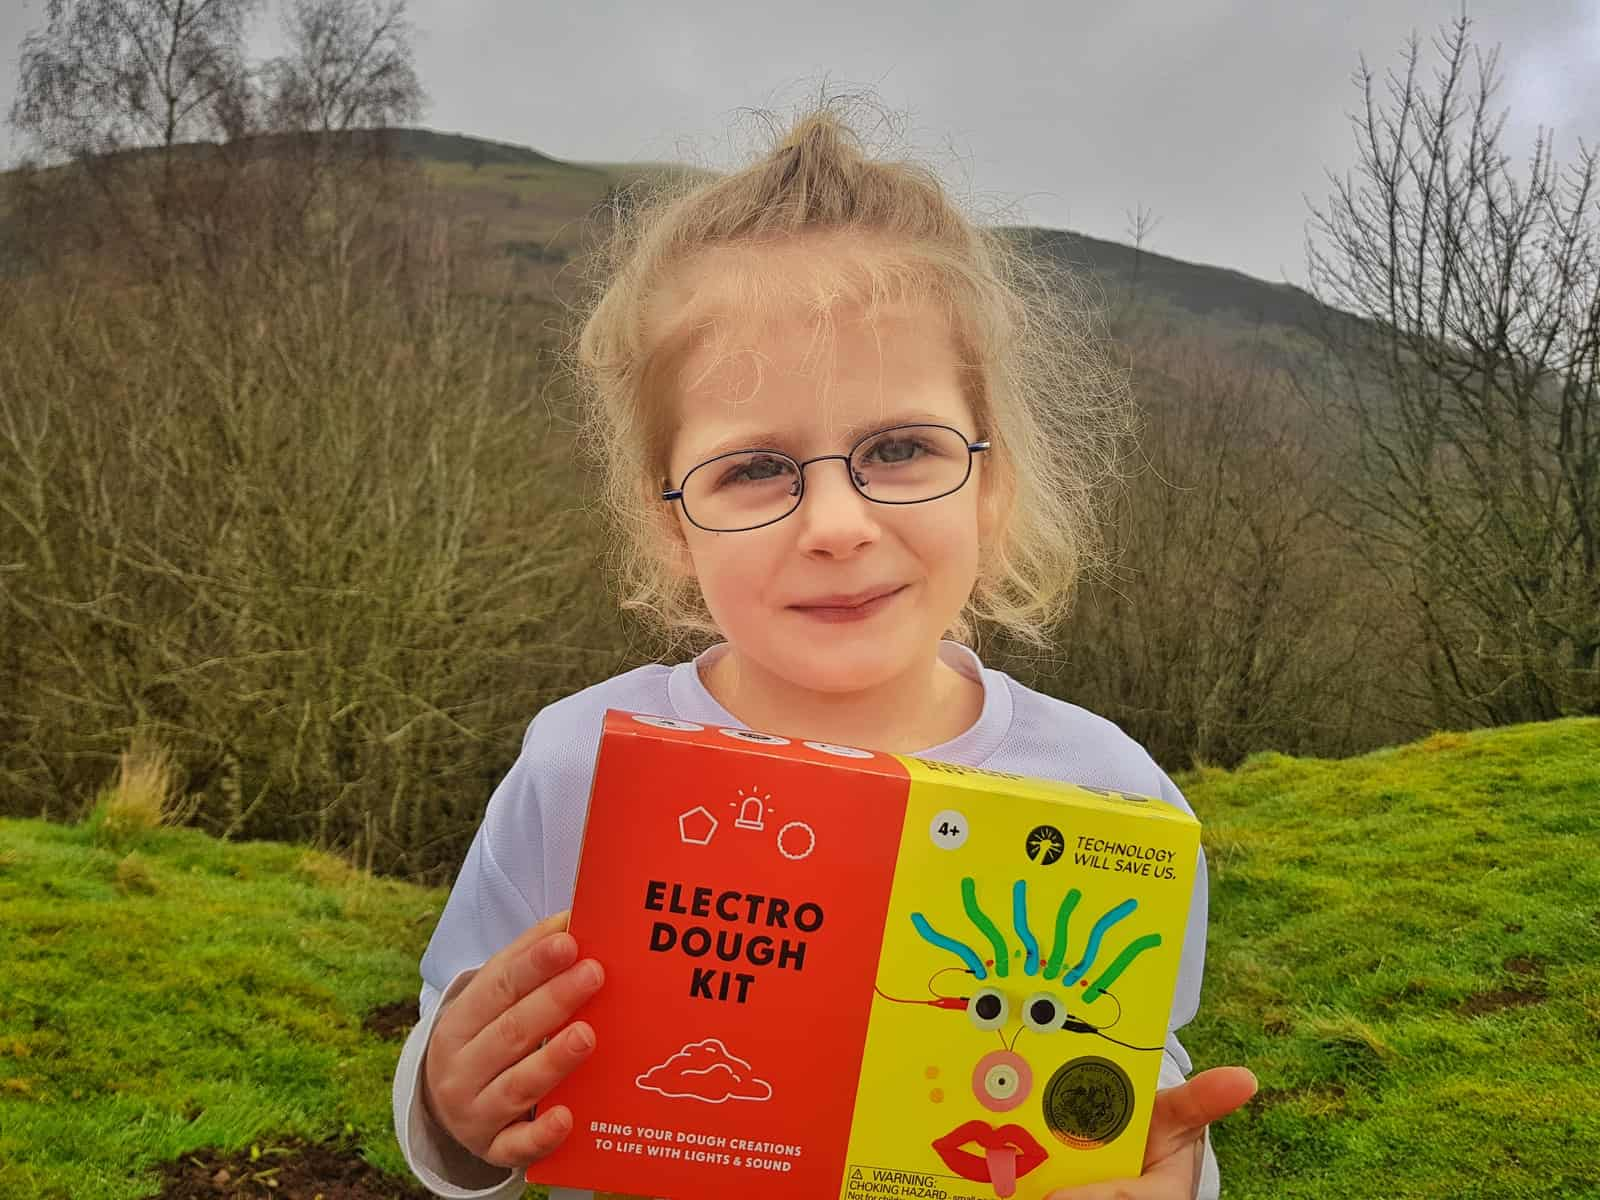 Little girl holding an Electro Dough STEM science kit